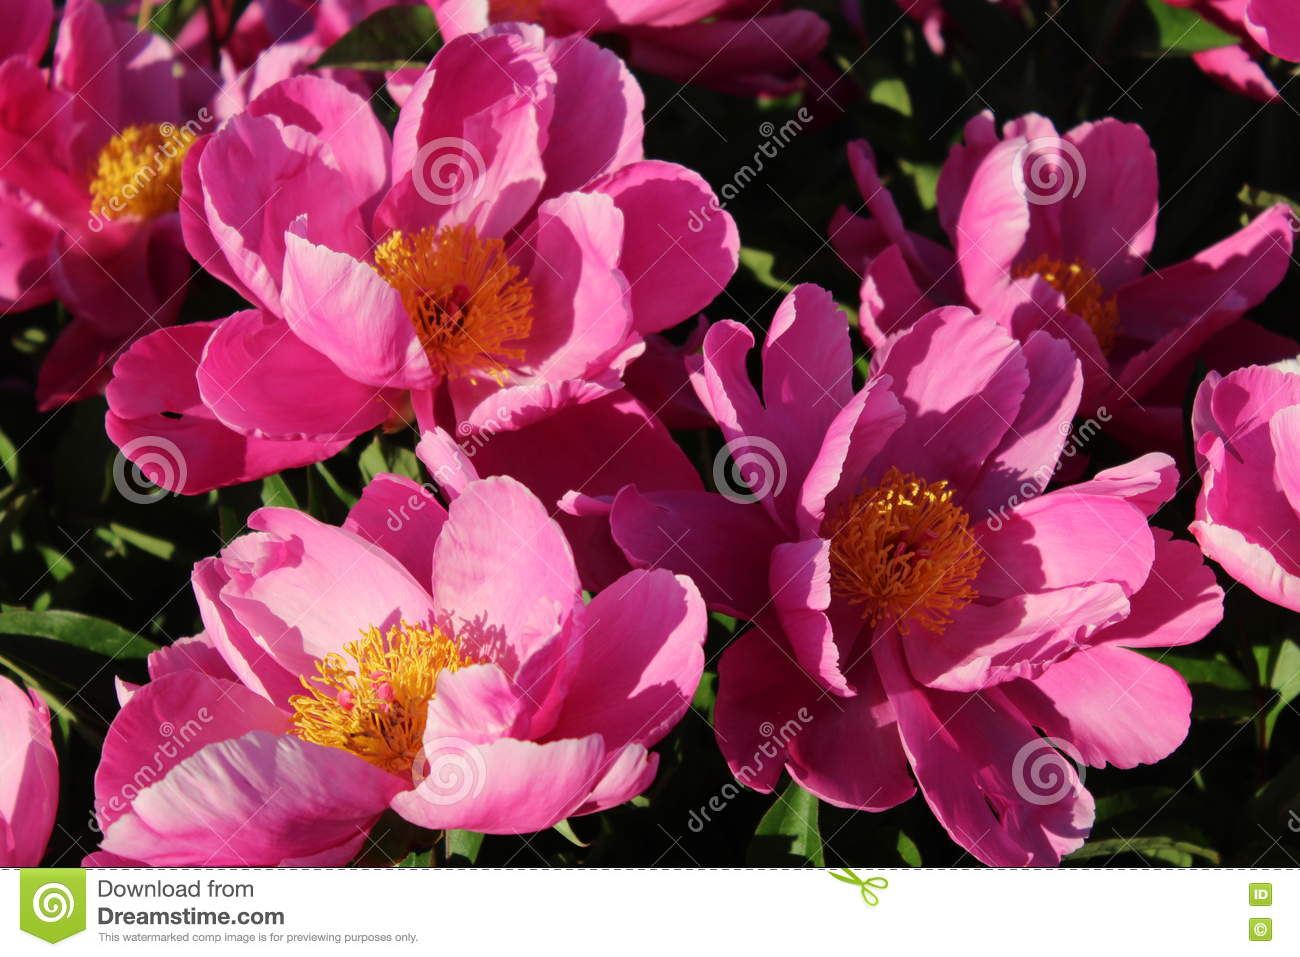 Delicate Pink Flowers With Yellow Centers Stock Image Image Of